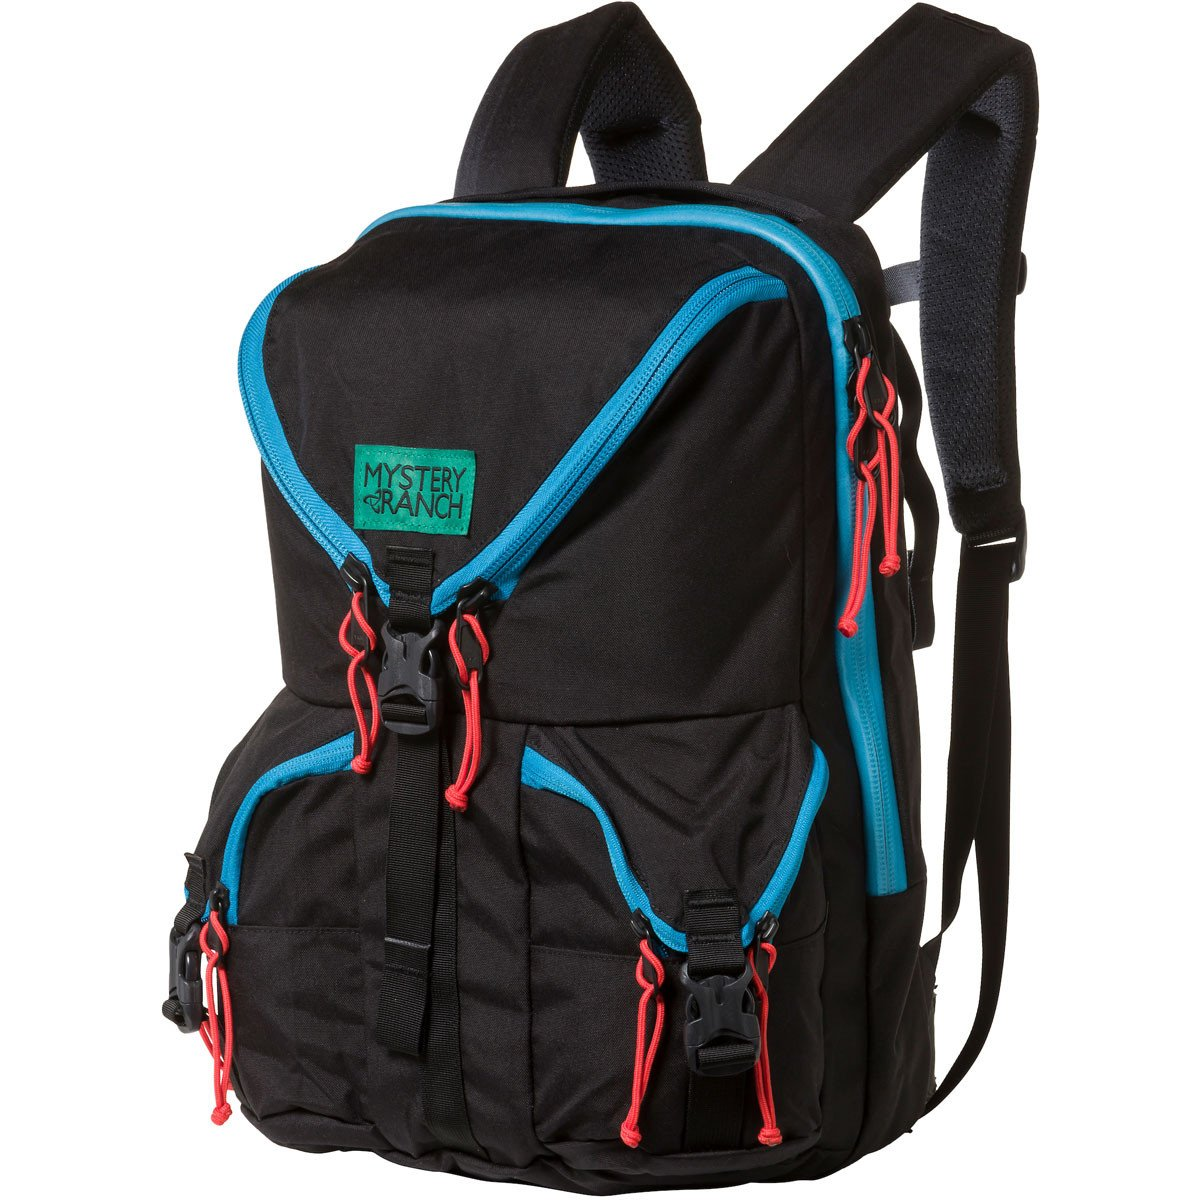 Mystery Ranch Rip Ruck Backpack